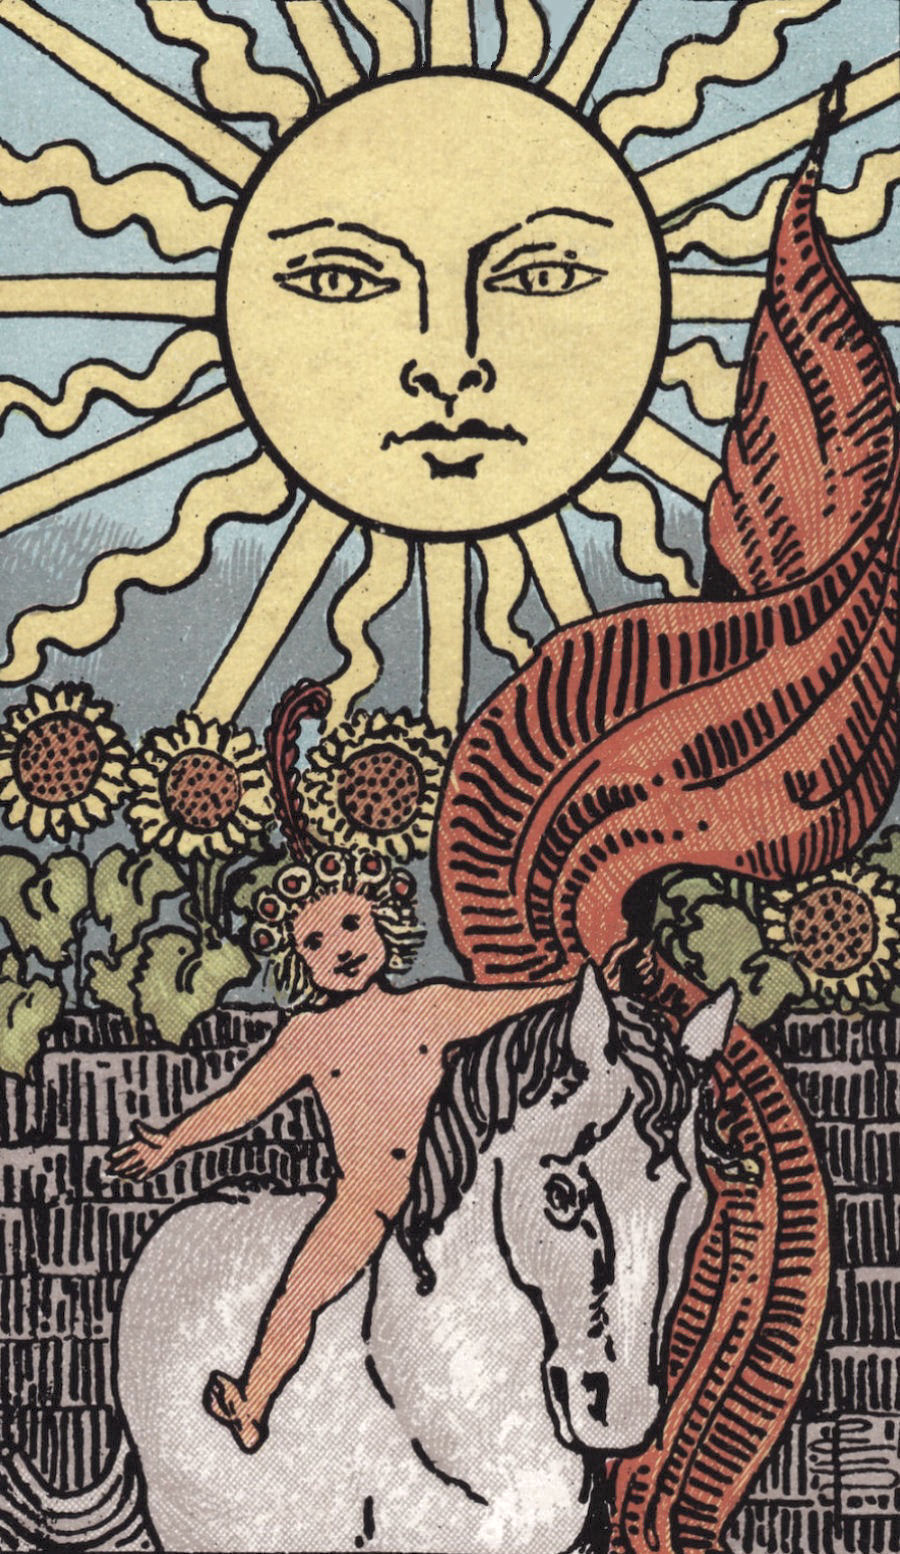 The Sun Rider Waite Smith Tarot Card